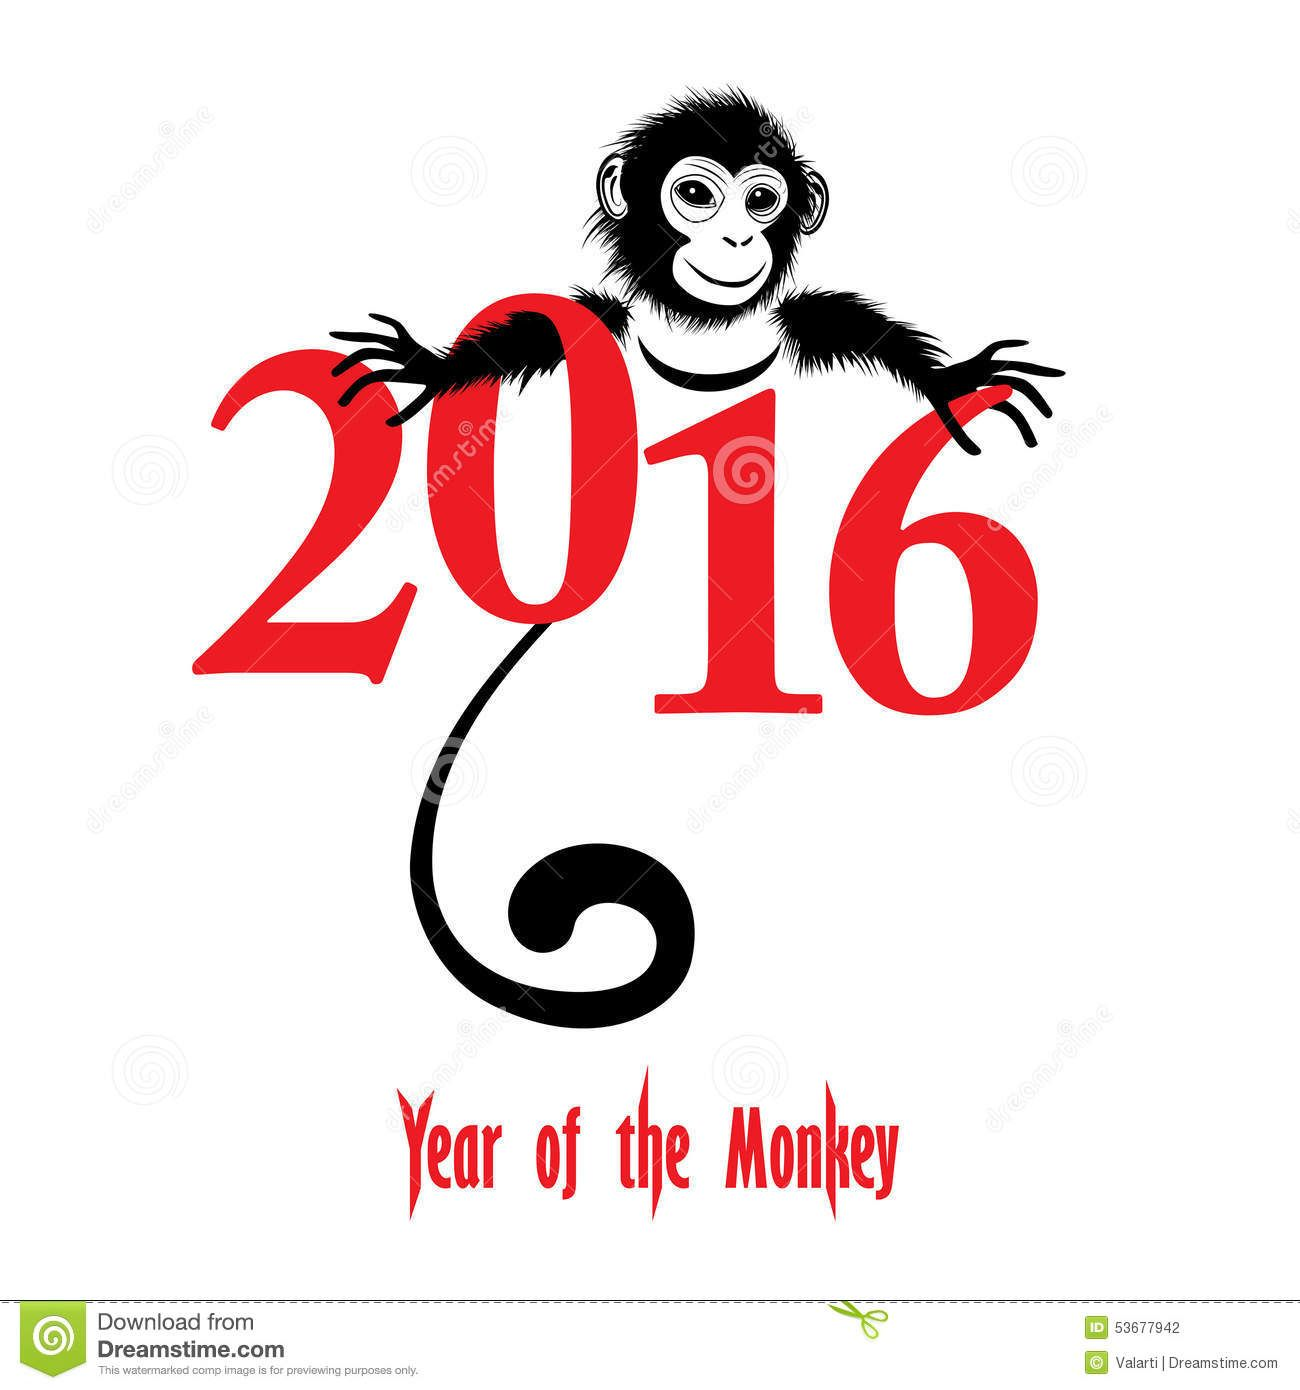 chinese new year 2016 animal ophelia ryan - Chinese New Year 2016 Animal